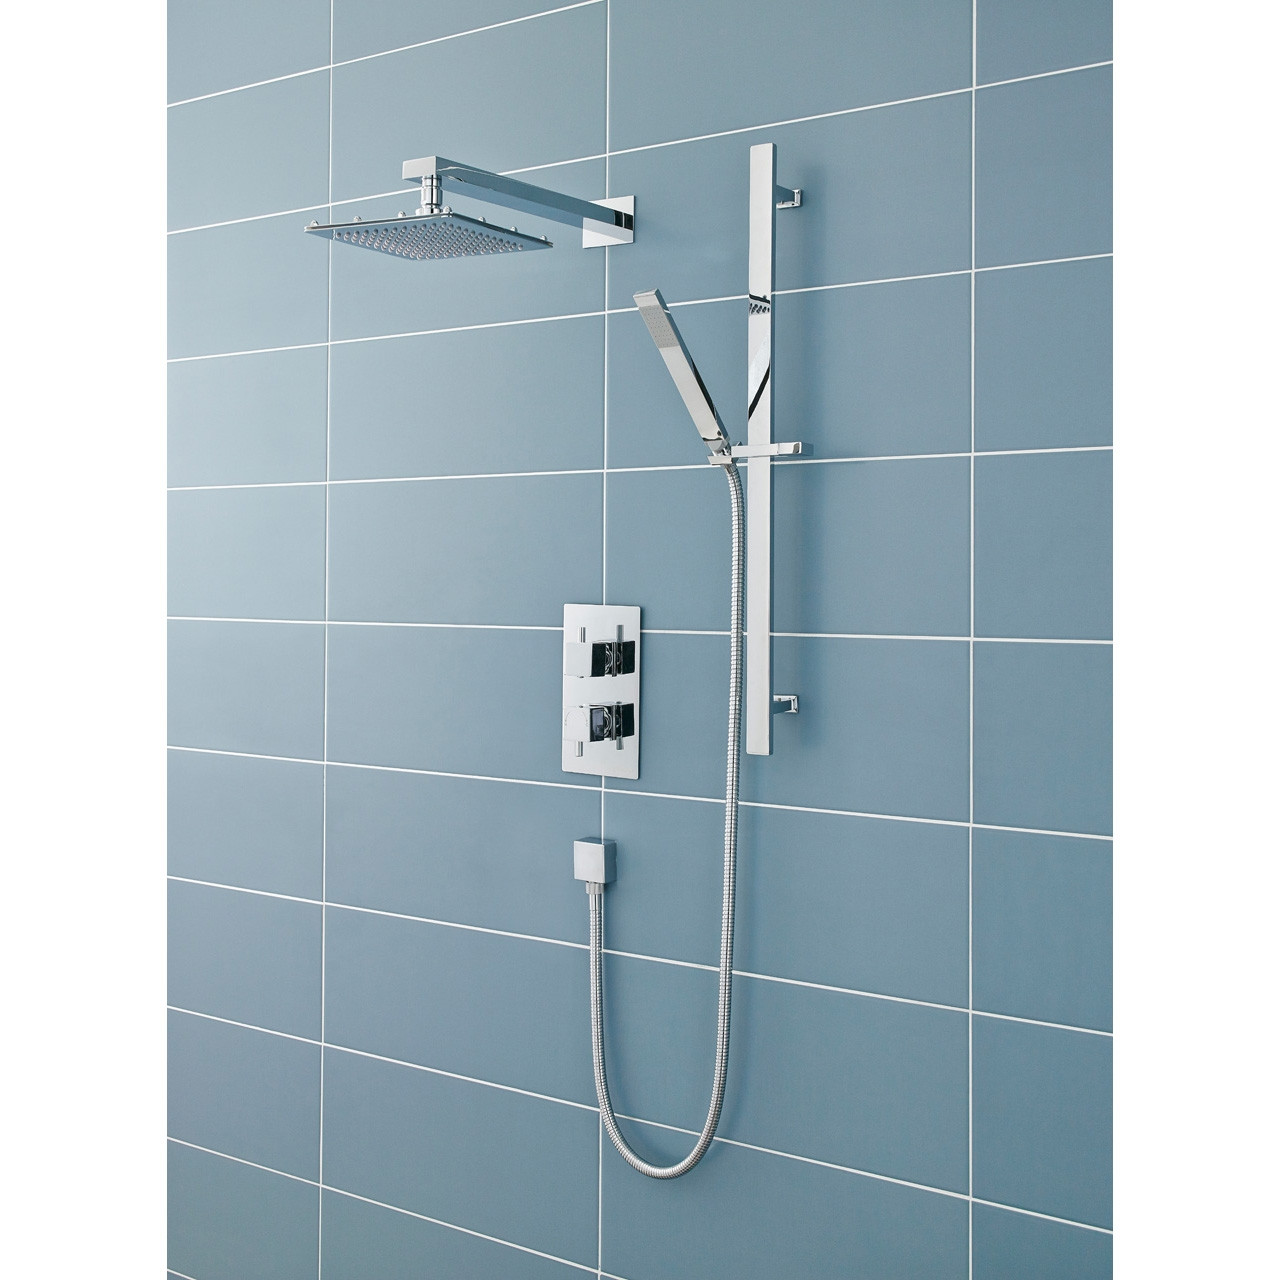 Premier Pioneer Diverter with Square Handle and Square Plate ABS - JTY391